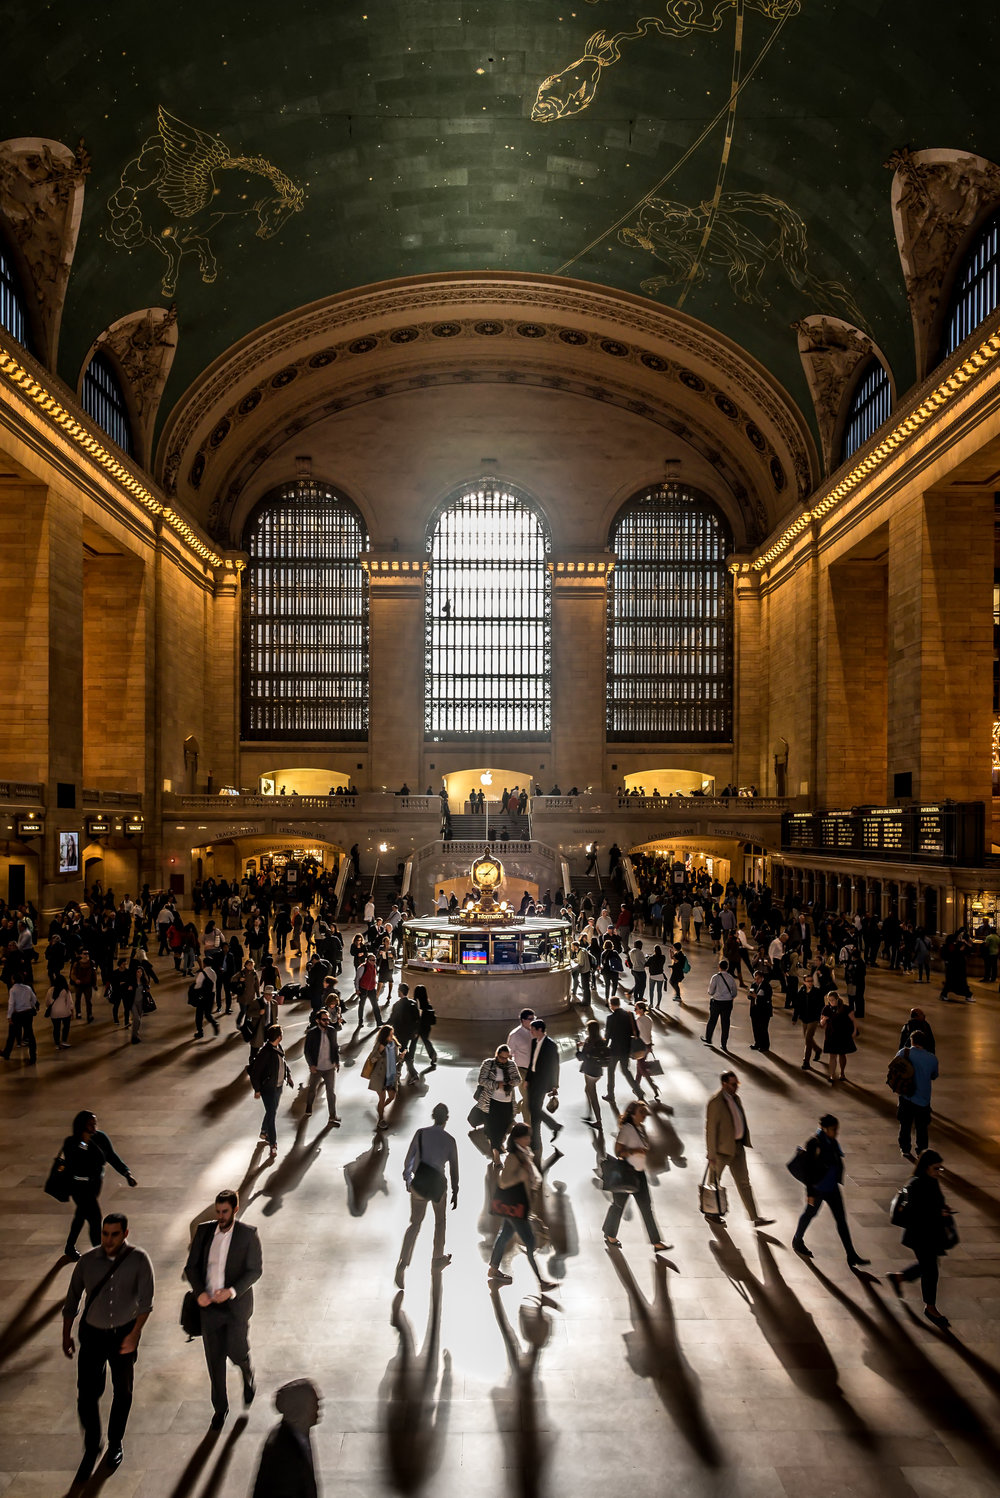 Travel category winner, Javan Ng, Morning rush hour at Grand Central Terminal in New York